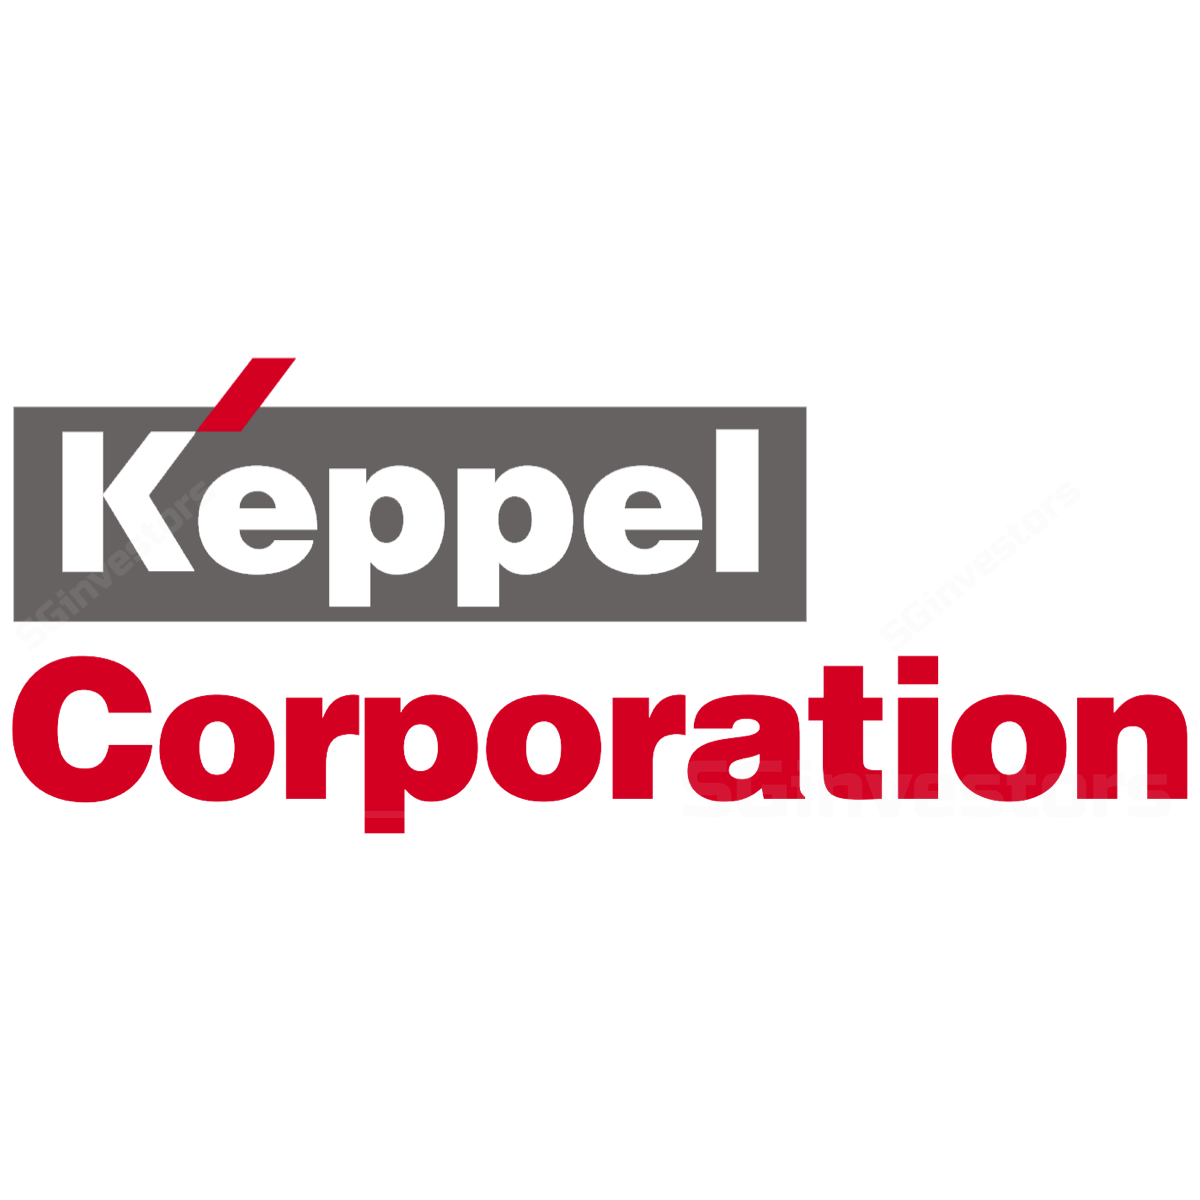 Keppel Corporation - OCBC Investment 2018-01-22: Accumulate On Dips